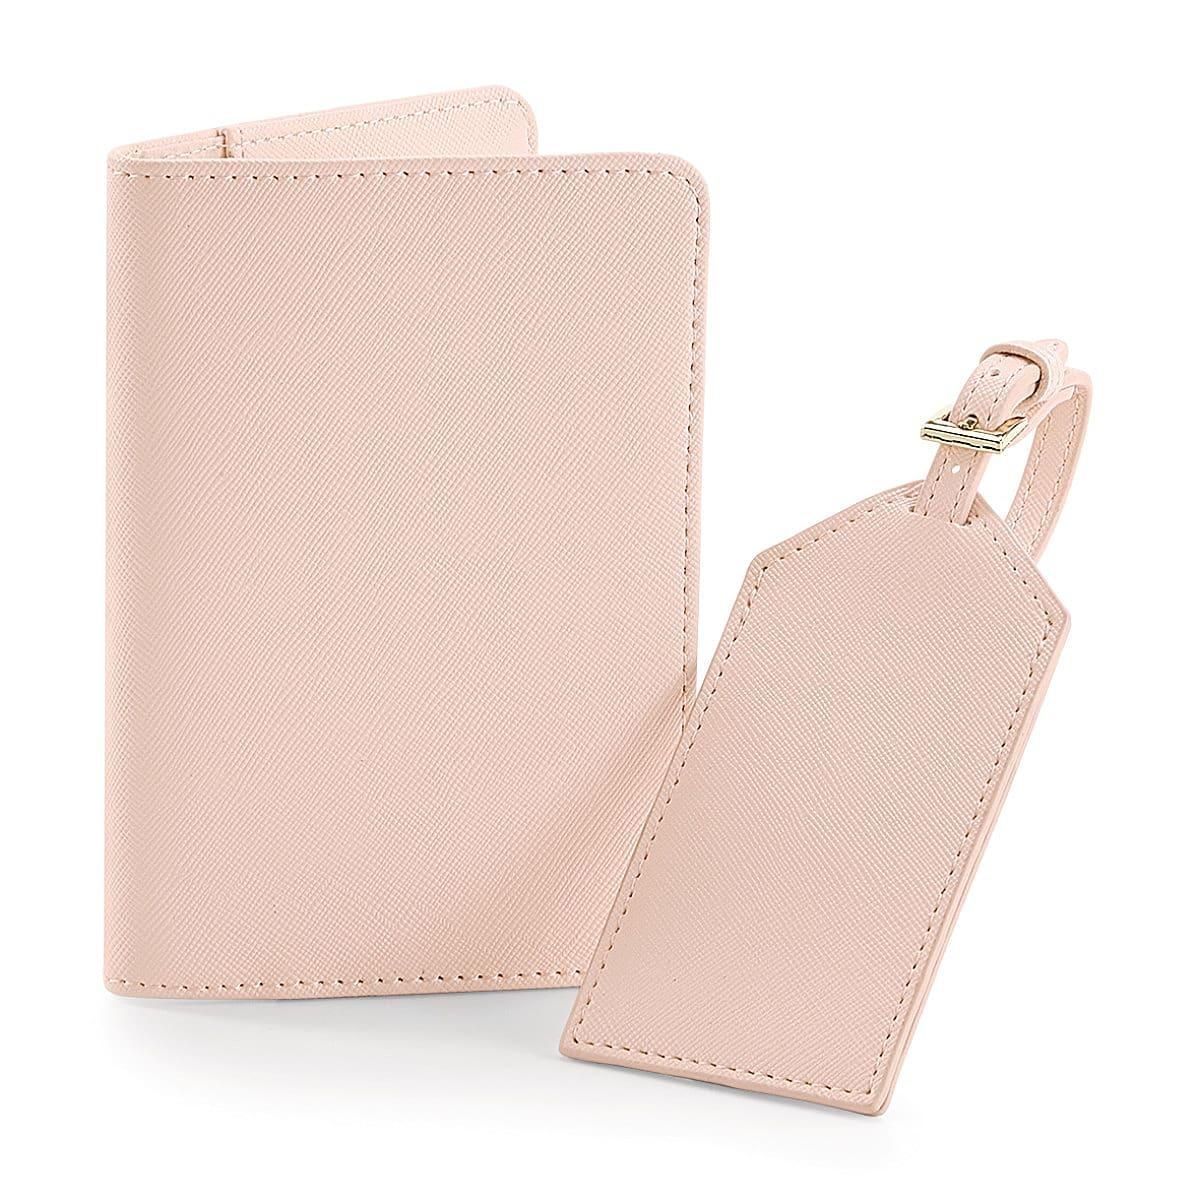 Bagbase Boutique Travel Set in Soft Pink (Product Code: BG755)